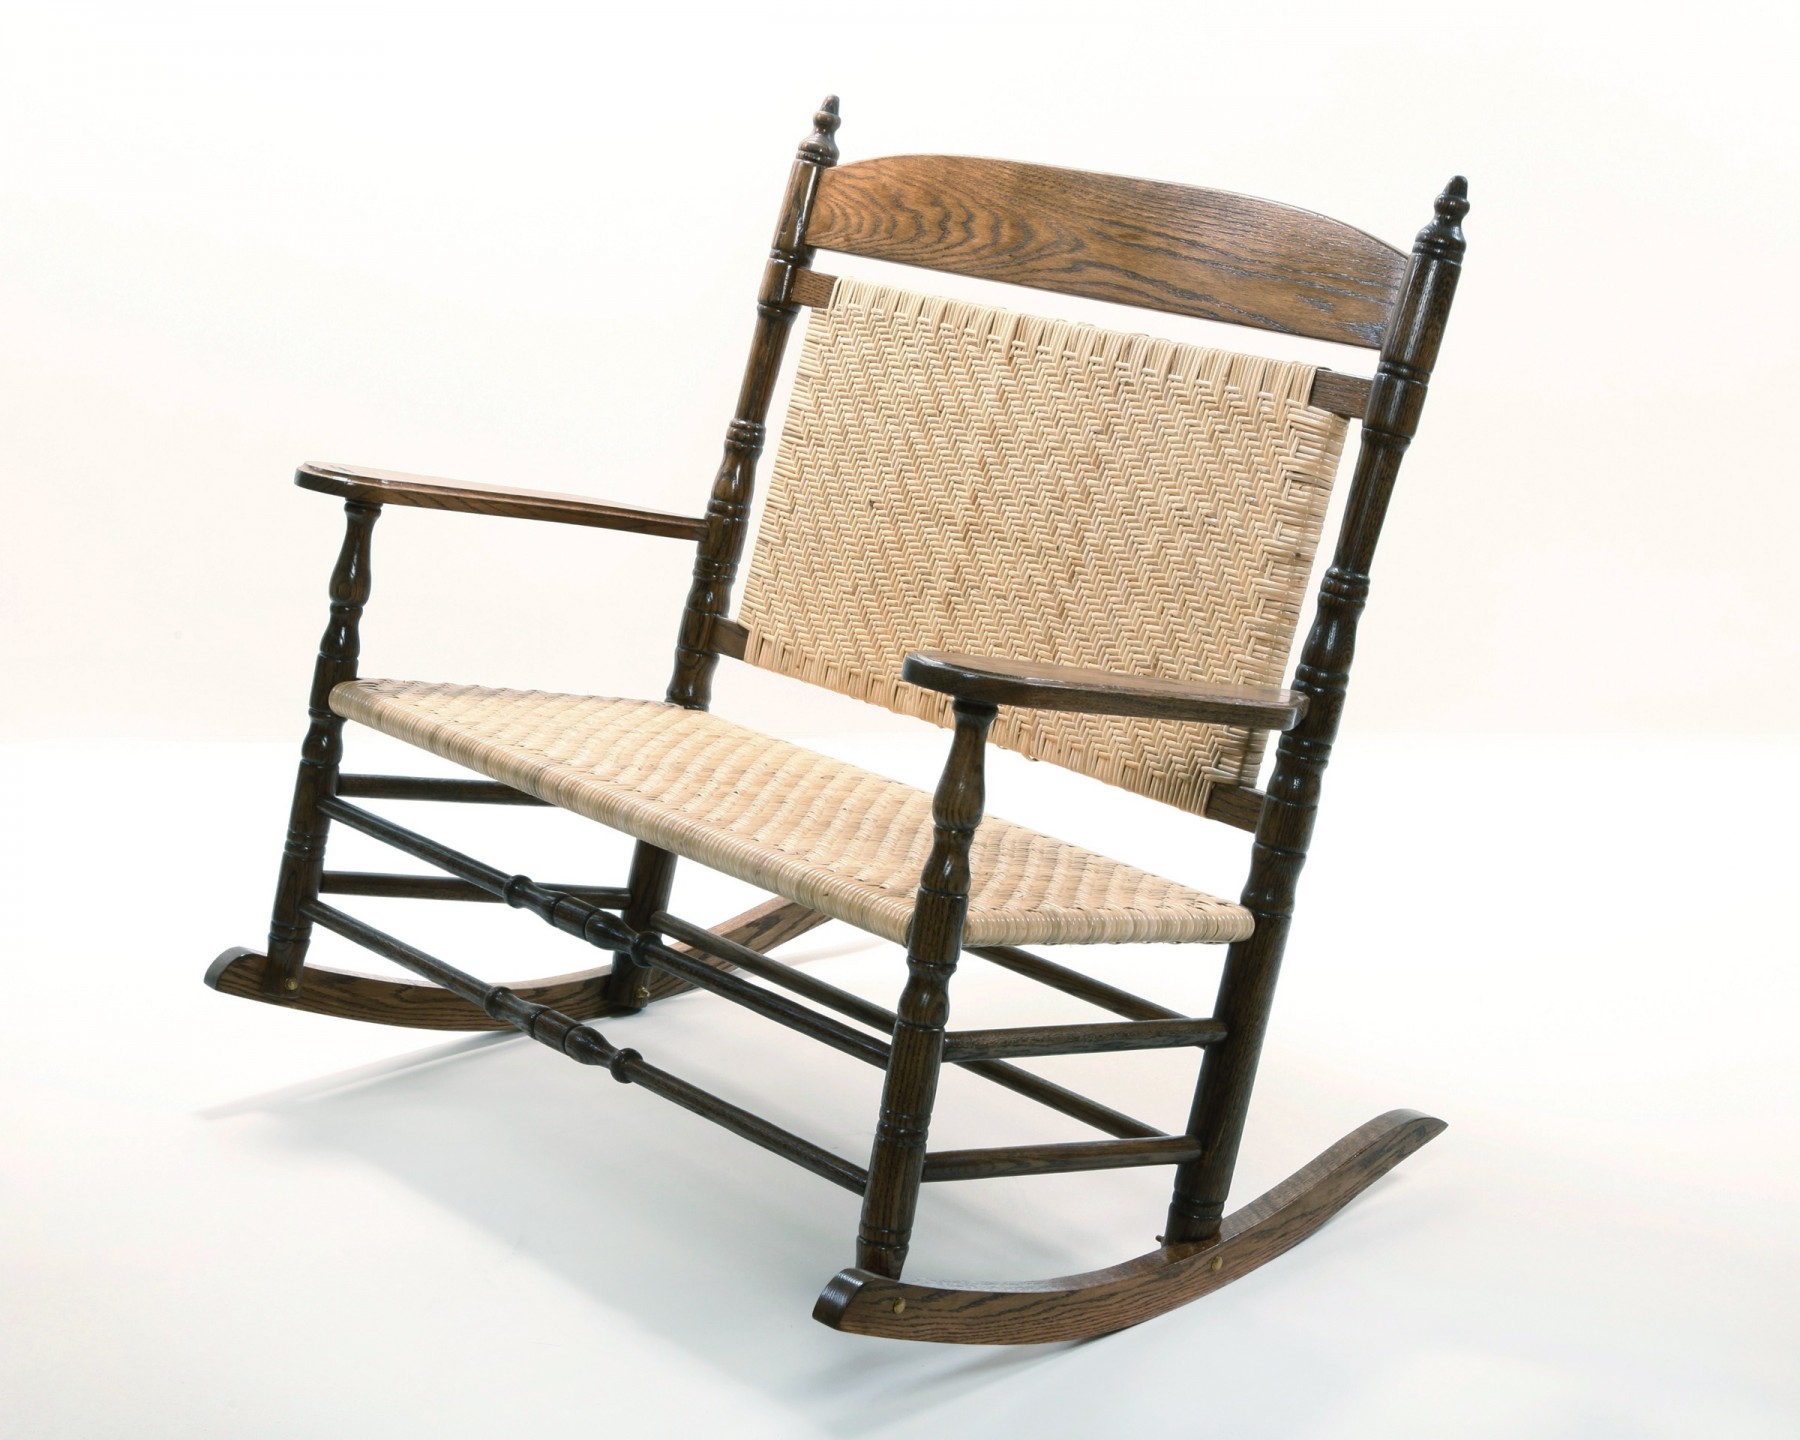 The Brumby Chair Company Courting Rocking Chair